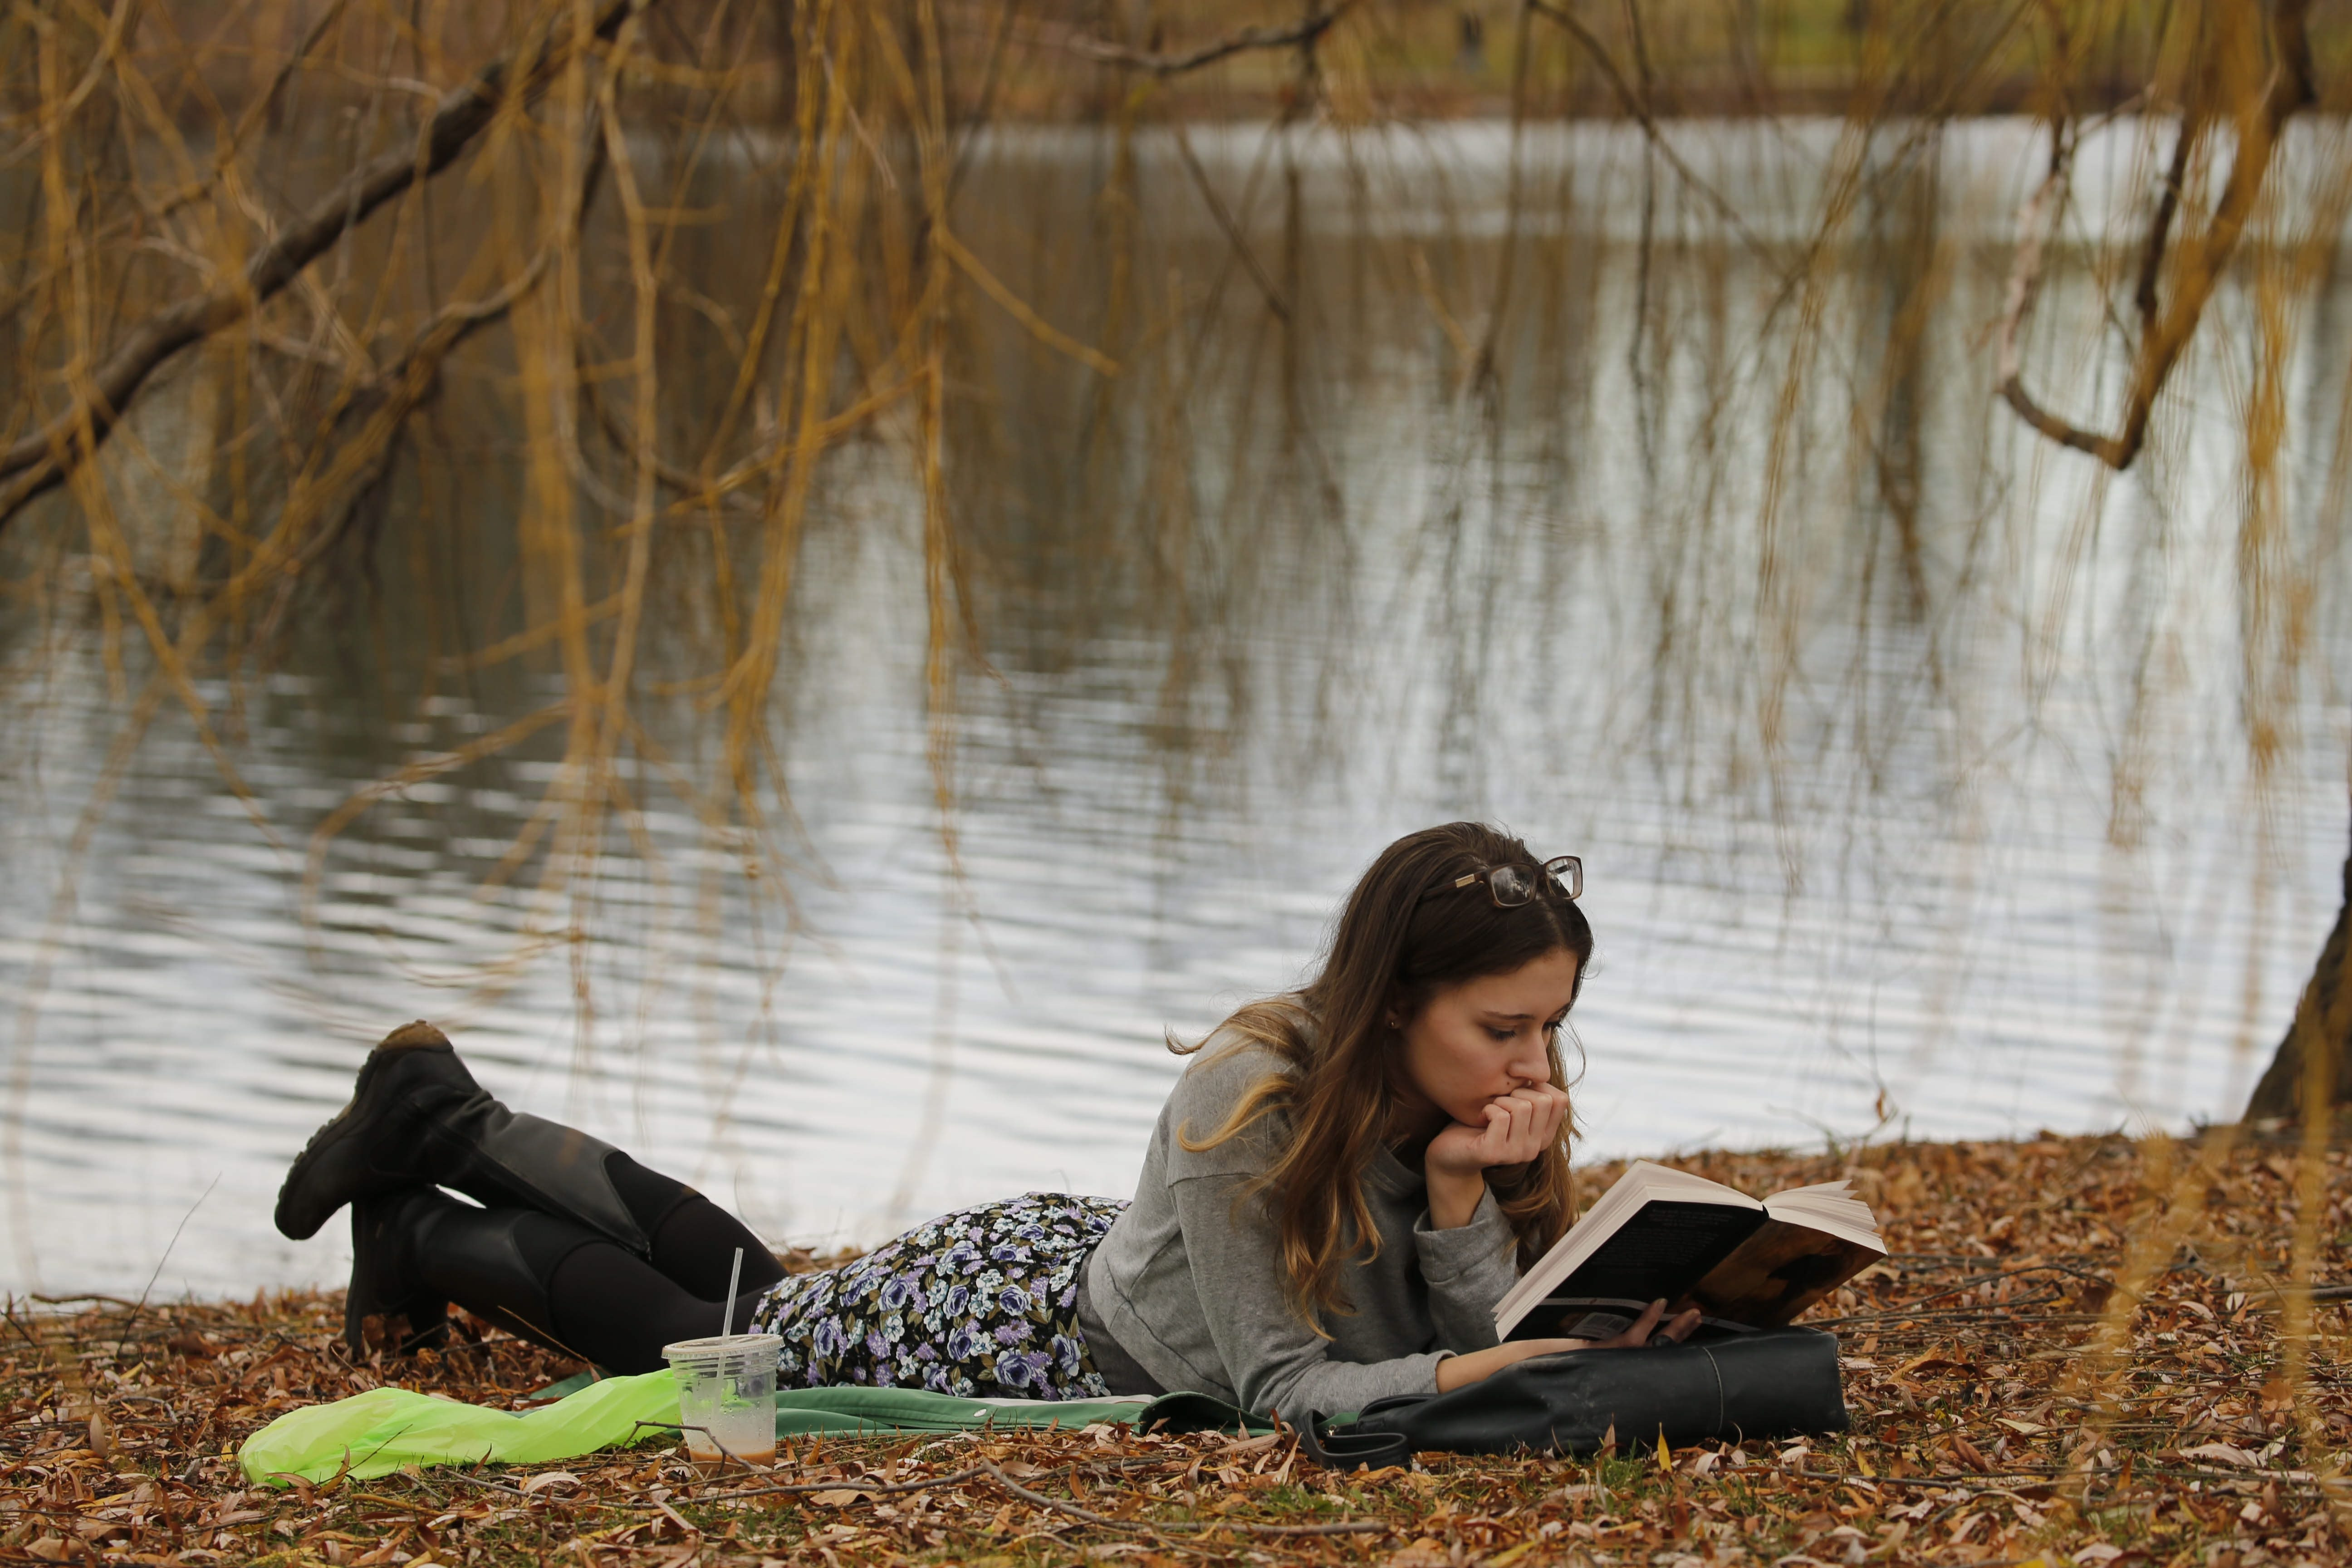 Grace Philips, of Buffalo, relaxes with a book at Hoyt Lake on a day when temperature here hit 70 in December for only third time ever.